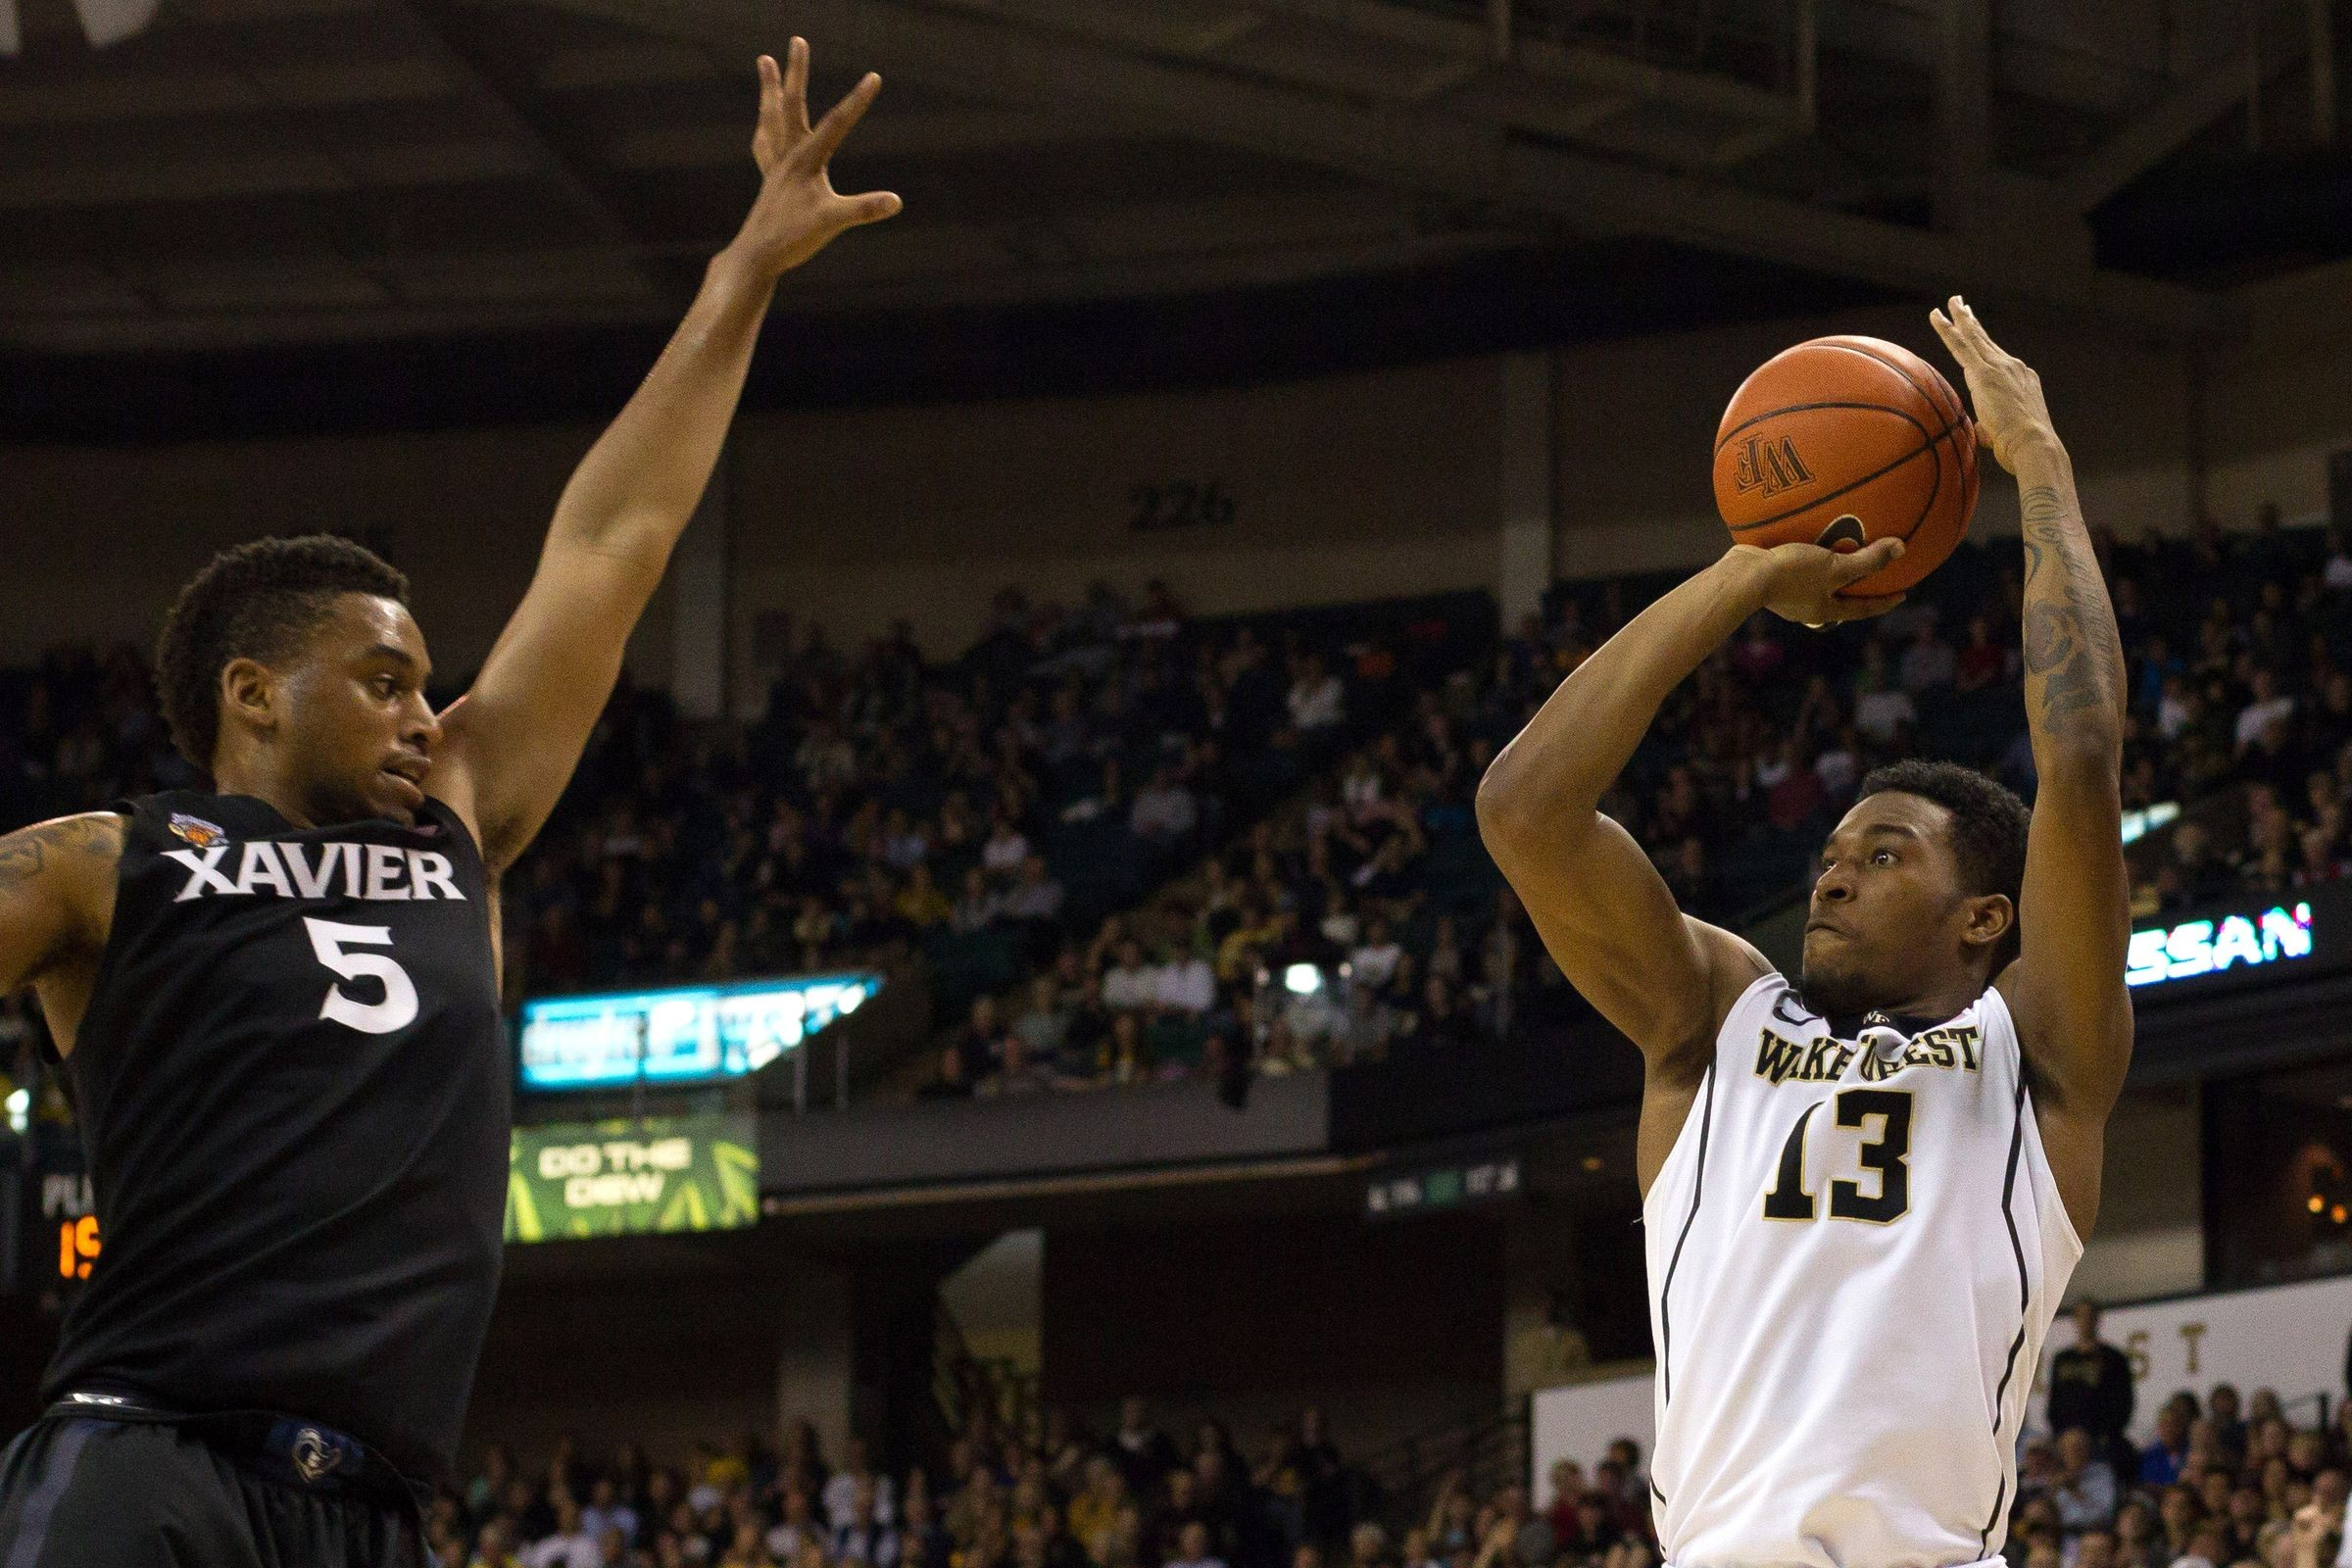 Xavier vs. Wake Forest recap: Musketeers survive early ...